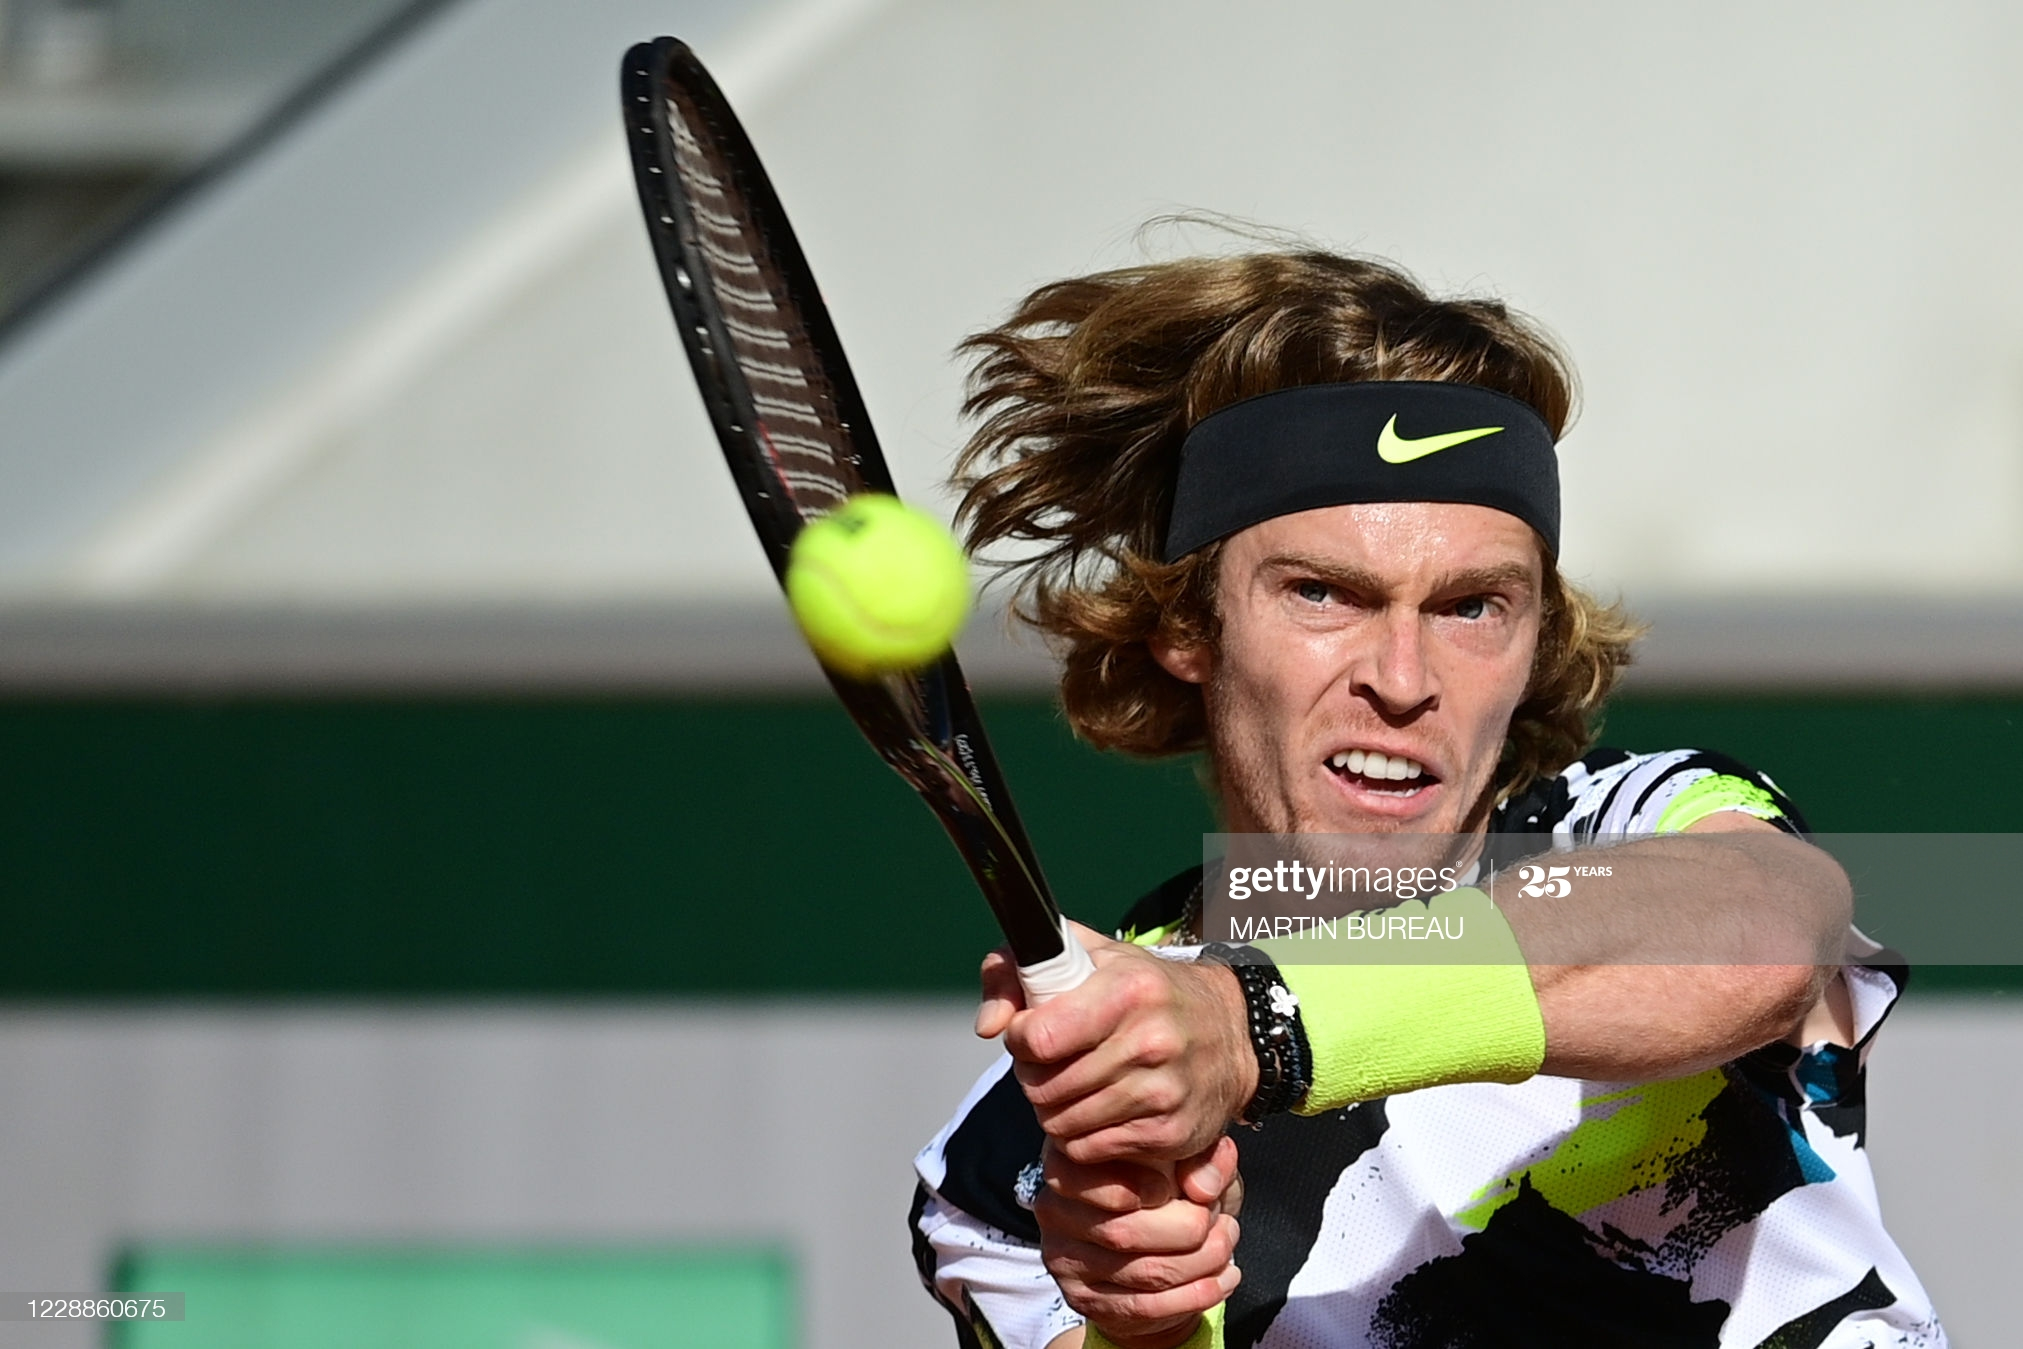 rublev day 7 french open 2020